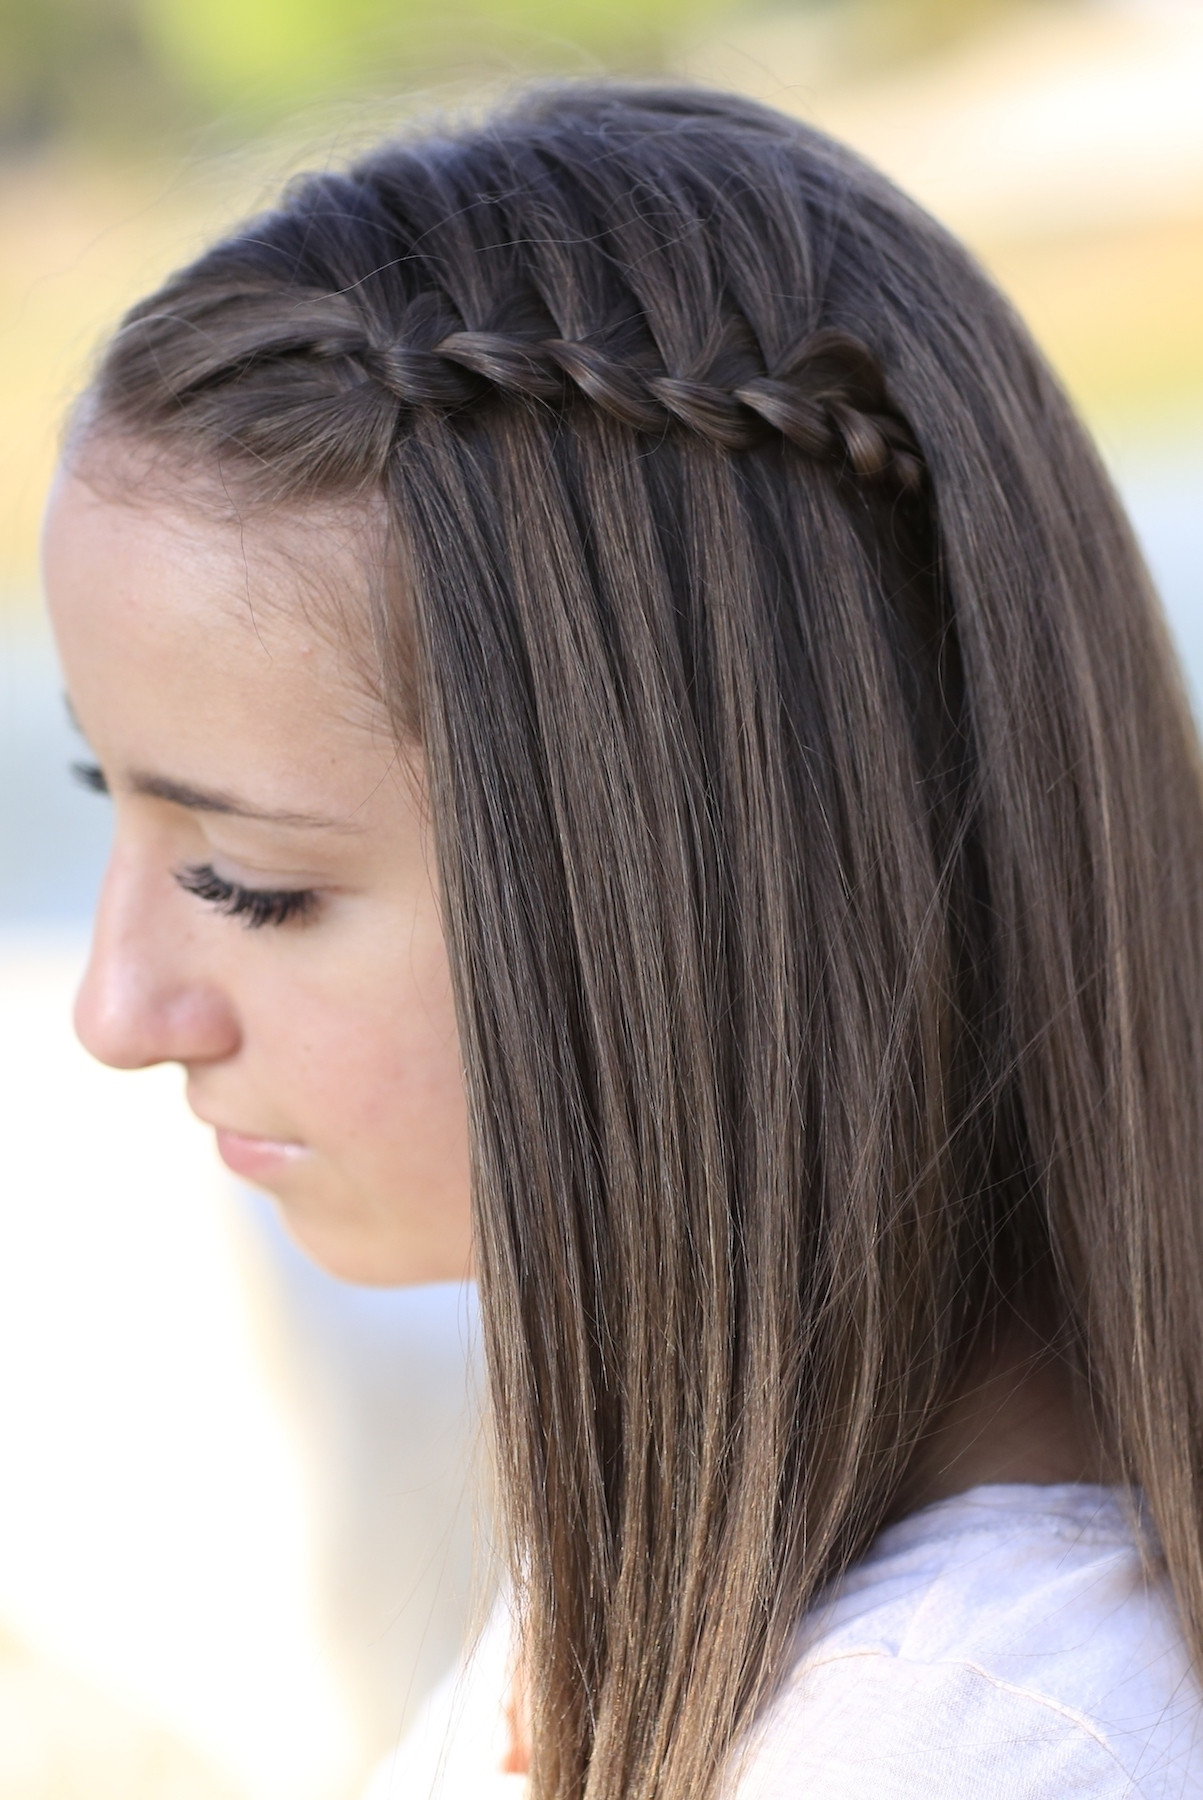 Best ideas about Hairstyles For 12 Year Old Girls . Save or Pin 12 Year Old Girl Hairstyles Now.